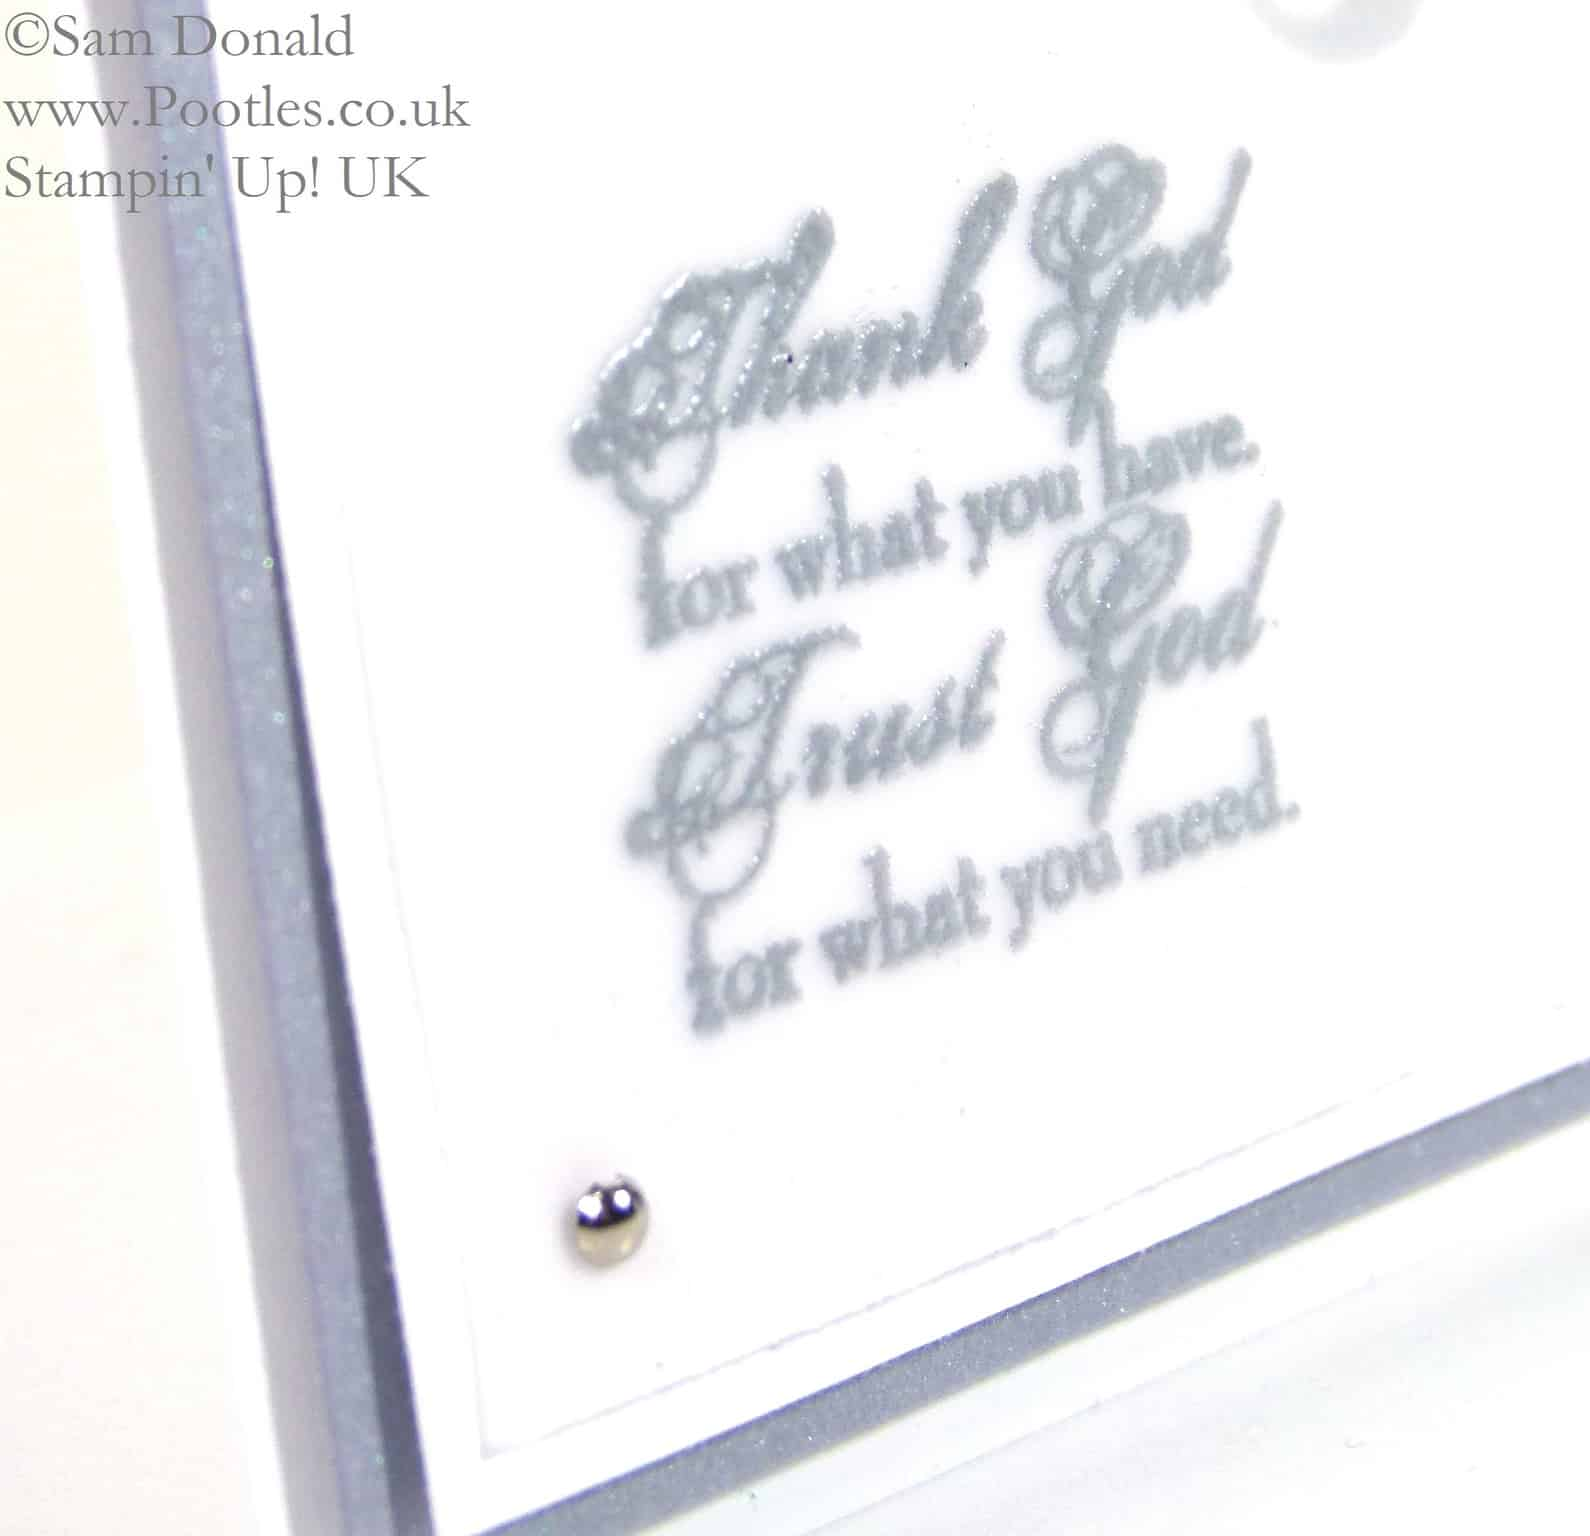 POOTLES Stampin' Up! UK Trust God For What You Need